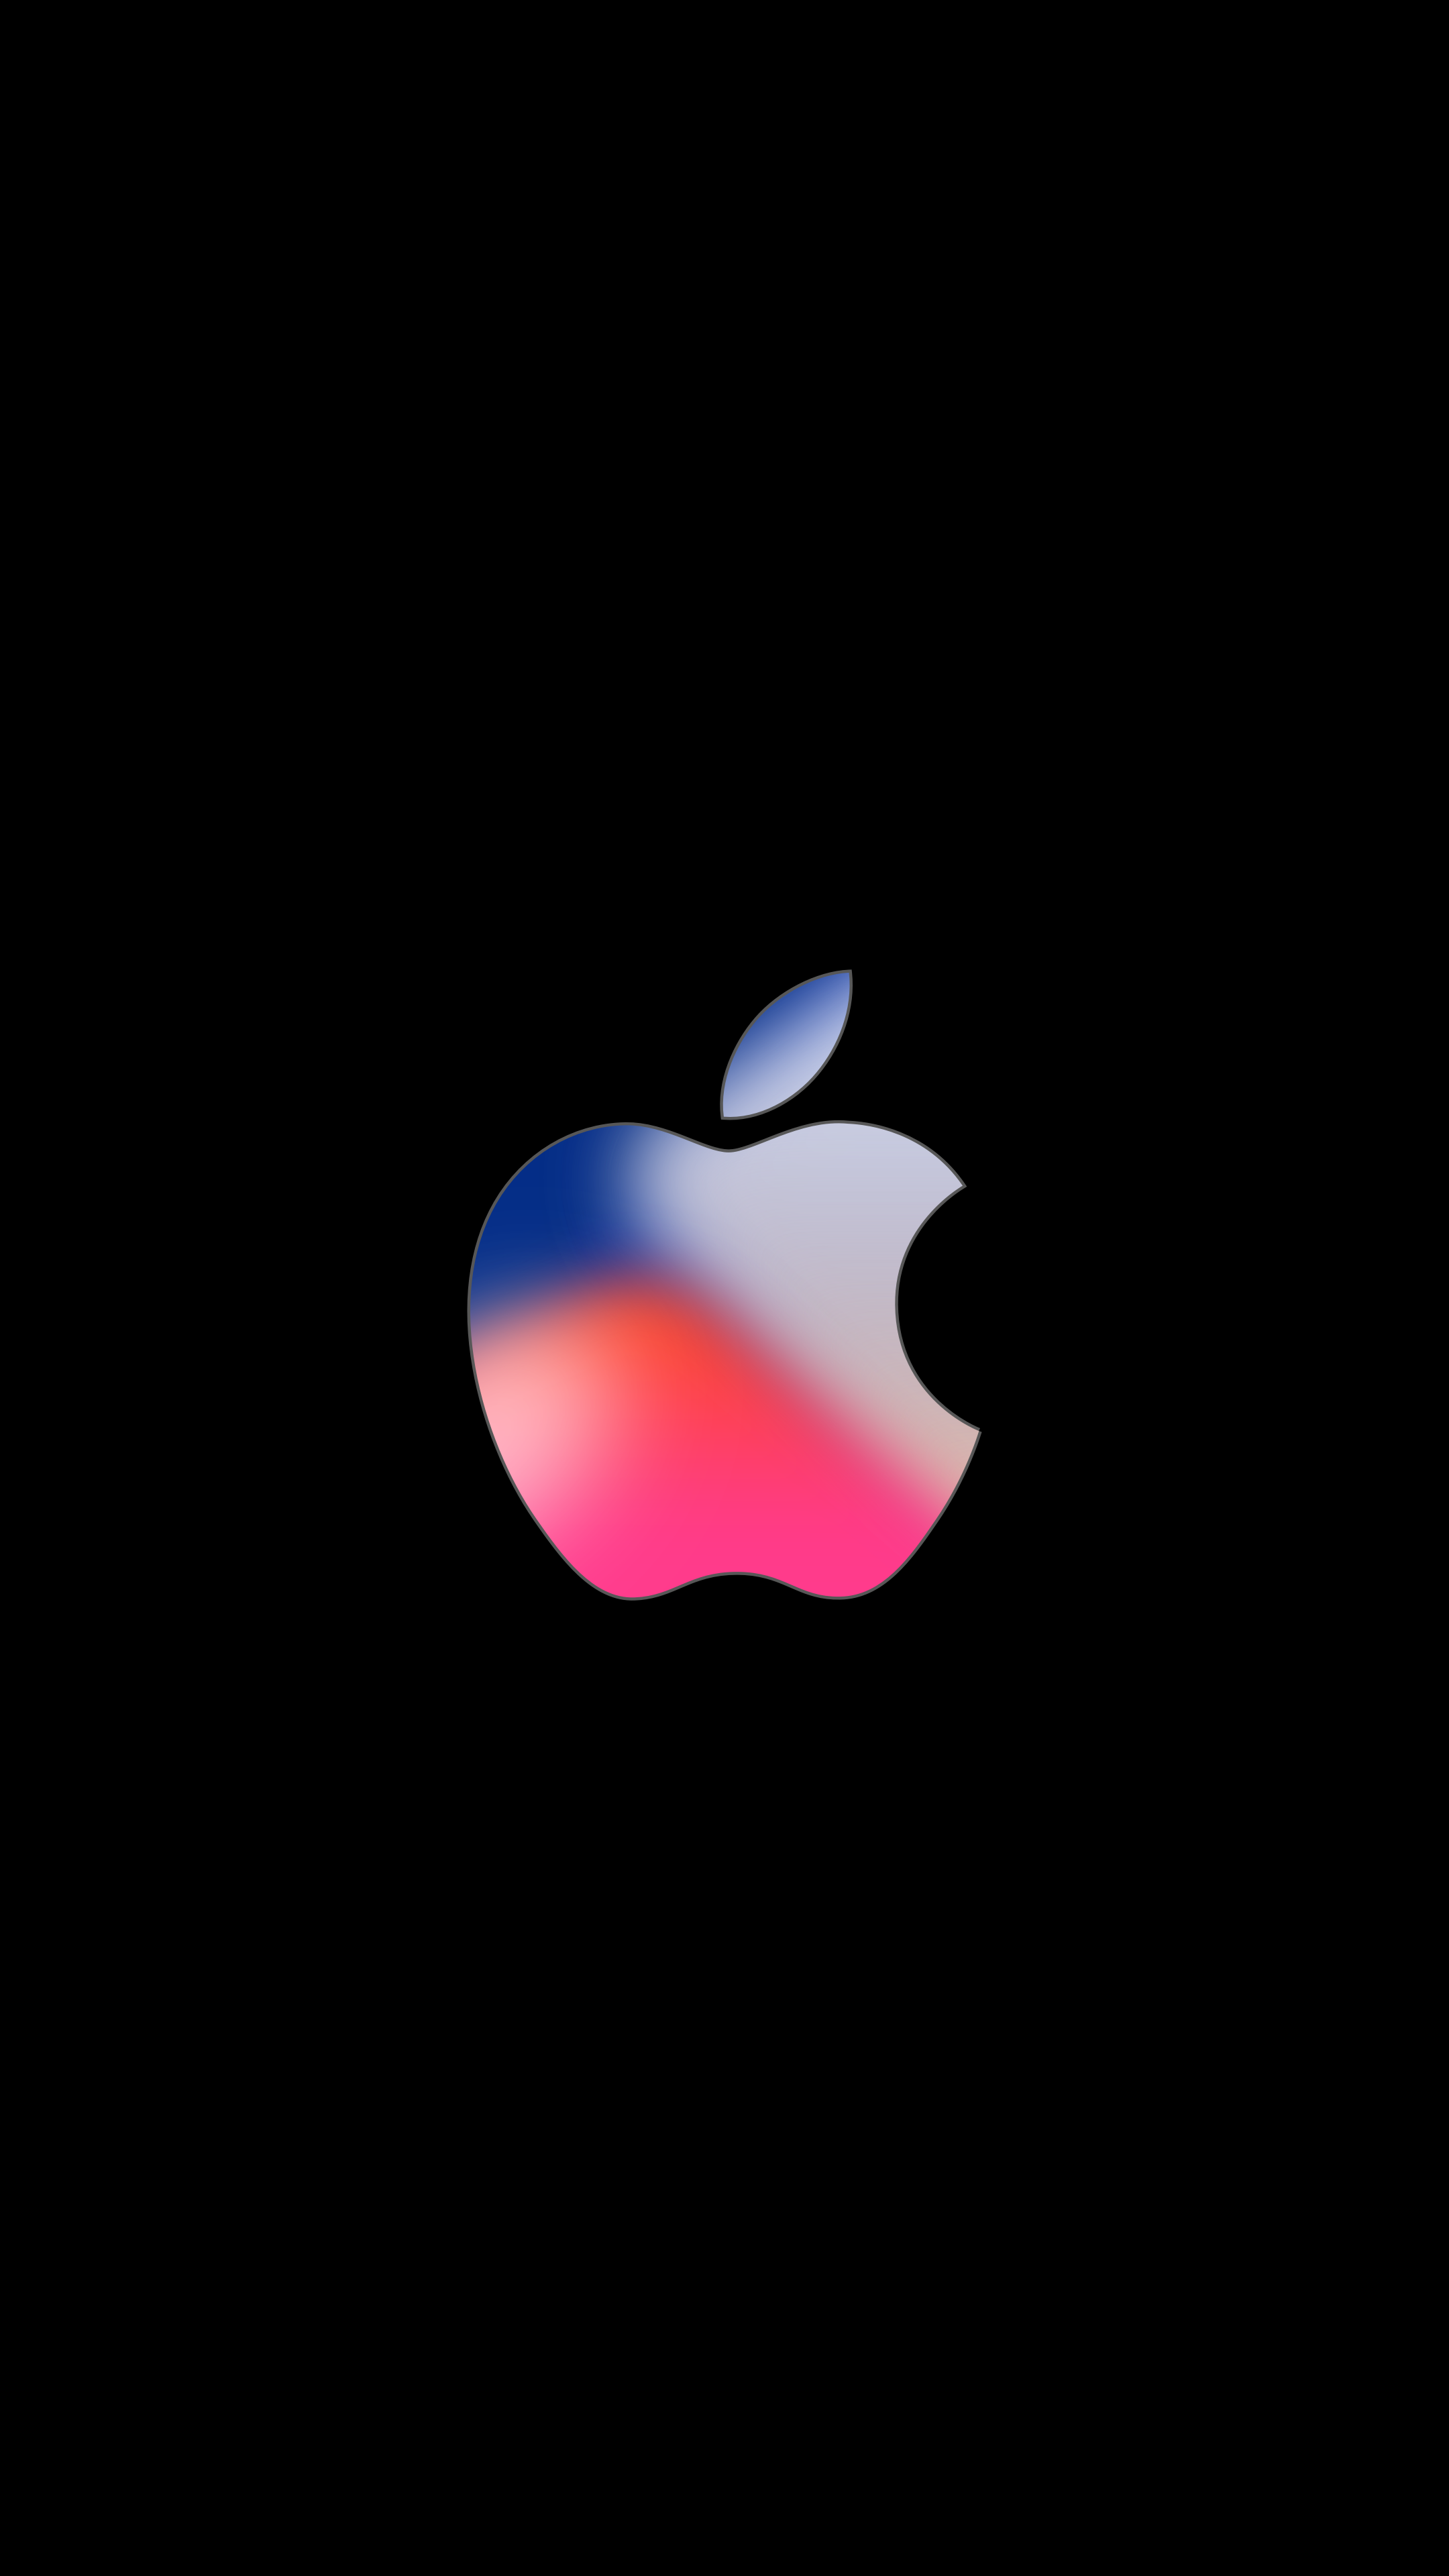 Apple A Day Lets The Doctor Play  D Ae D  D  D A D A D Aa  D A D A D  D  D  Iphone Xr Xs Wallpaper Hd Tecnologis